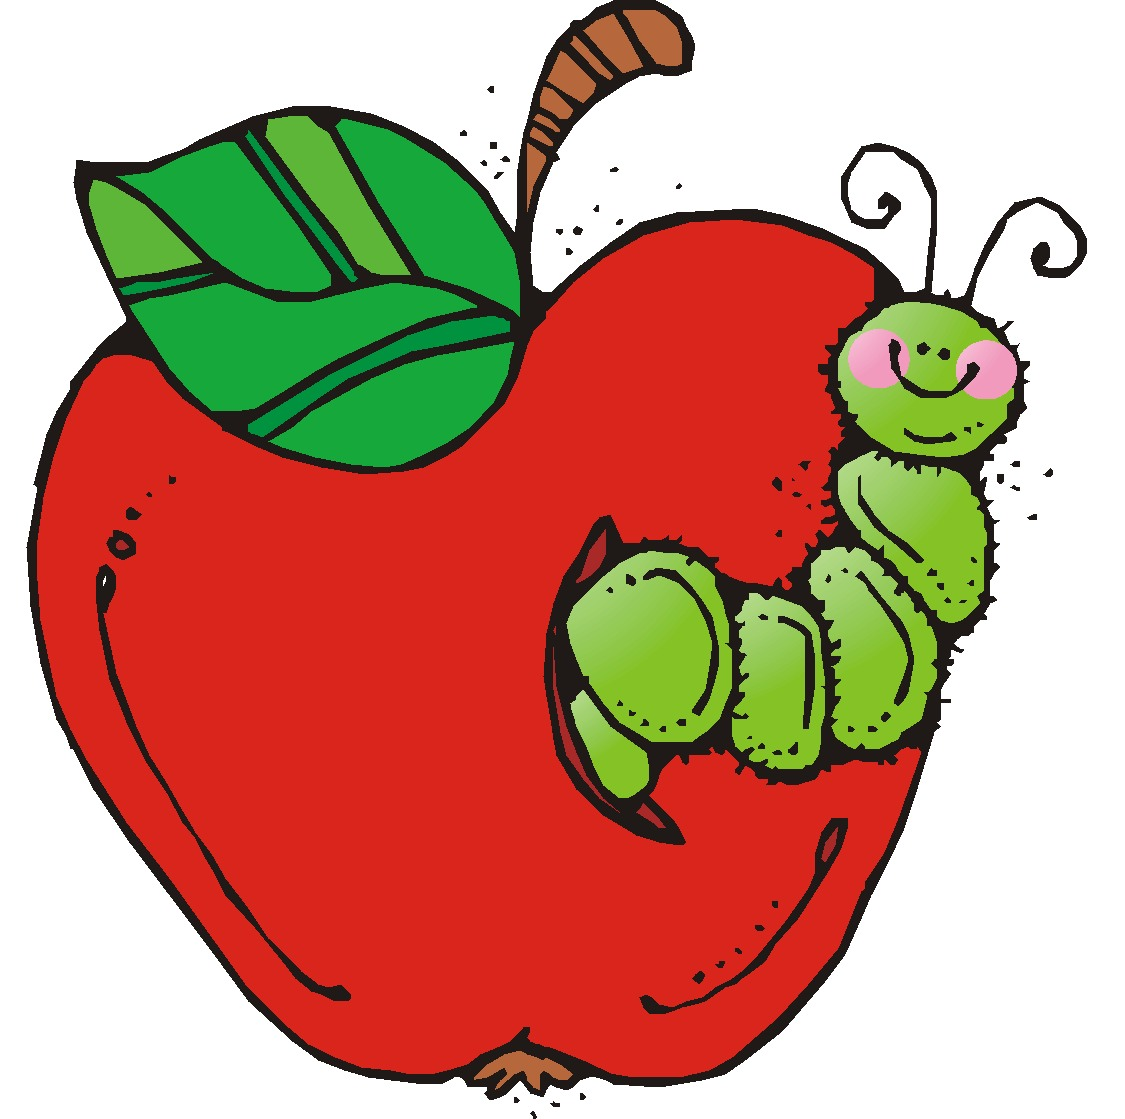 Blossom clipart animated. Apple at getdrawings com